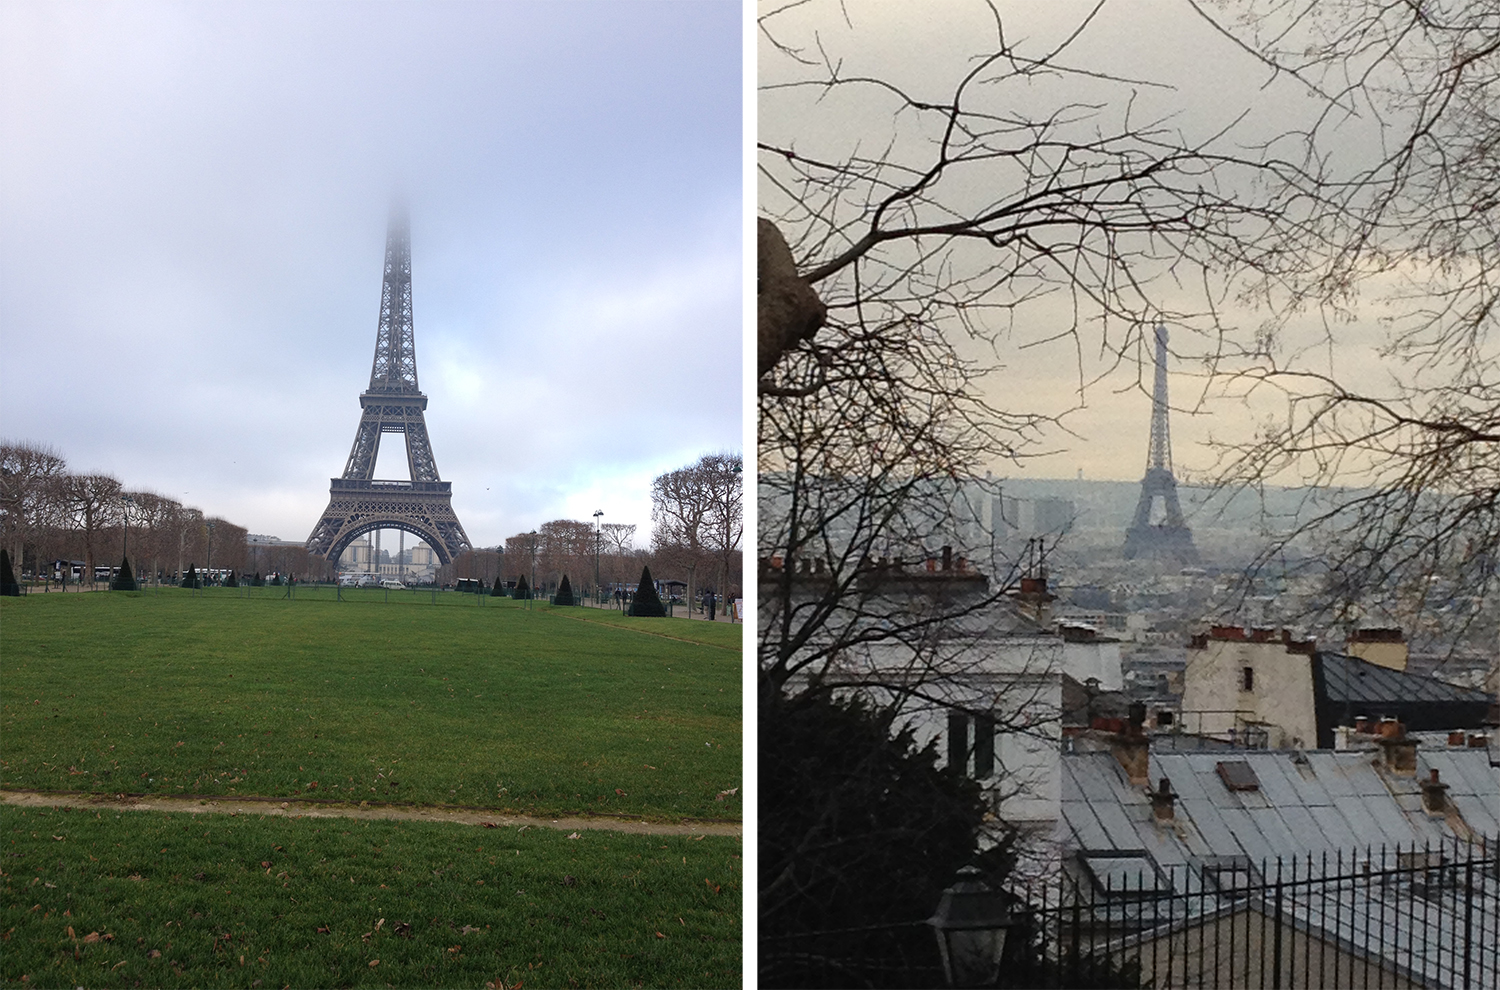 views of the Eiffiel Tower